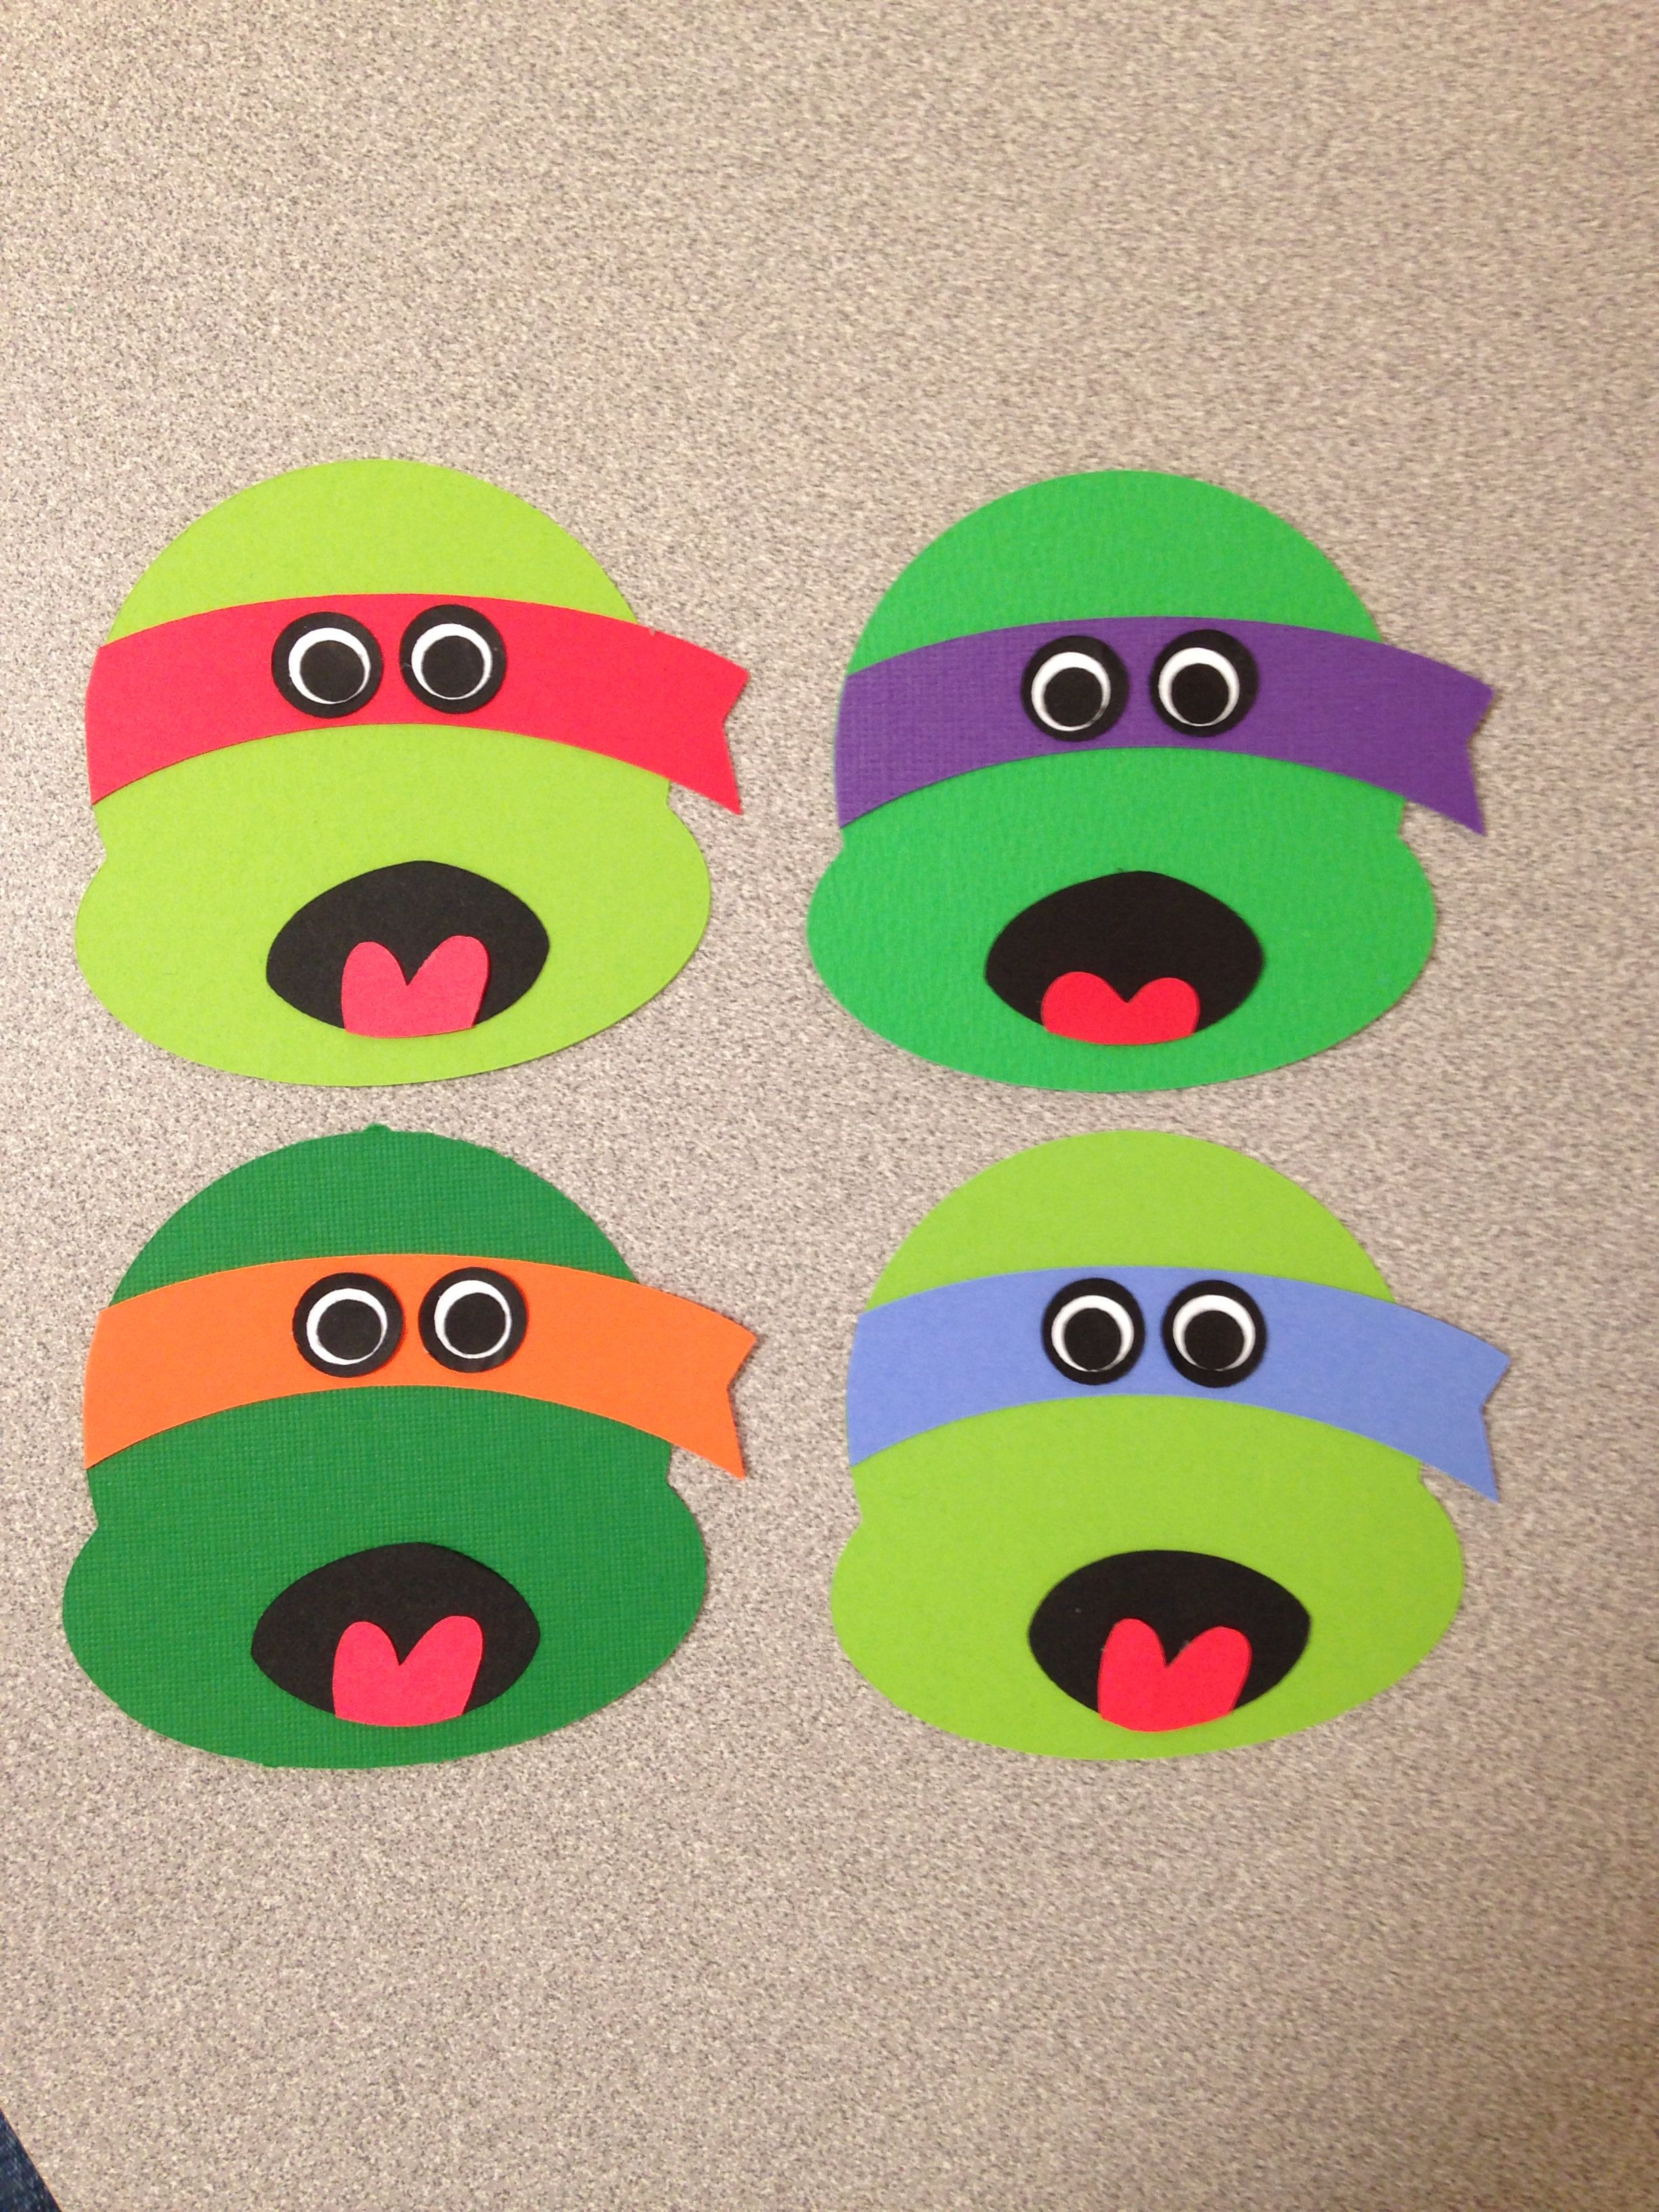 Teenage Mutant Ninja Turtle Valentines Made Using The Cricut Machine Just Planning To Attach To